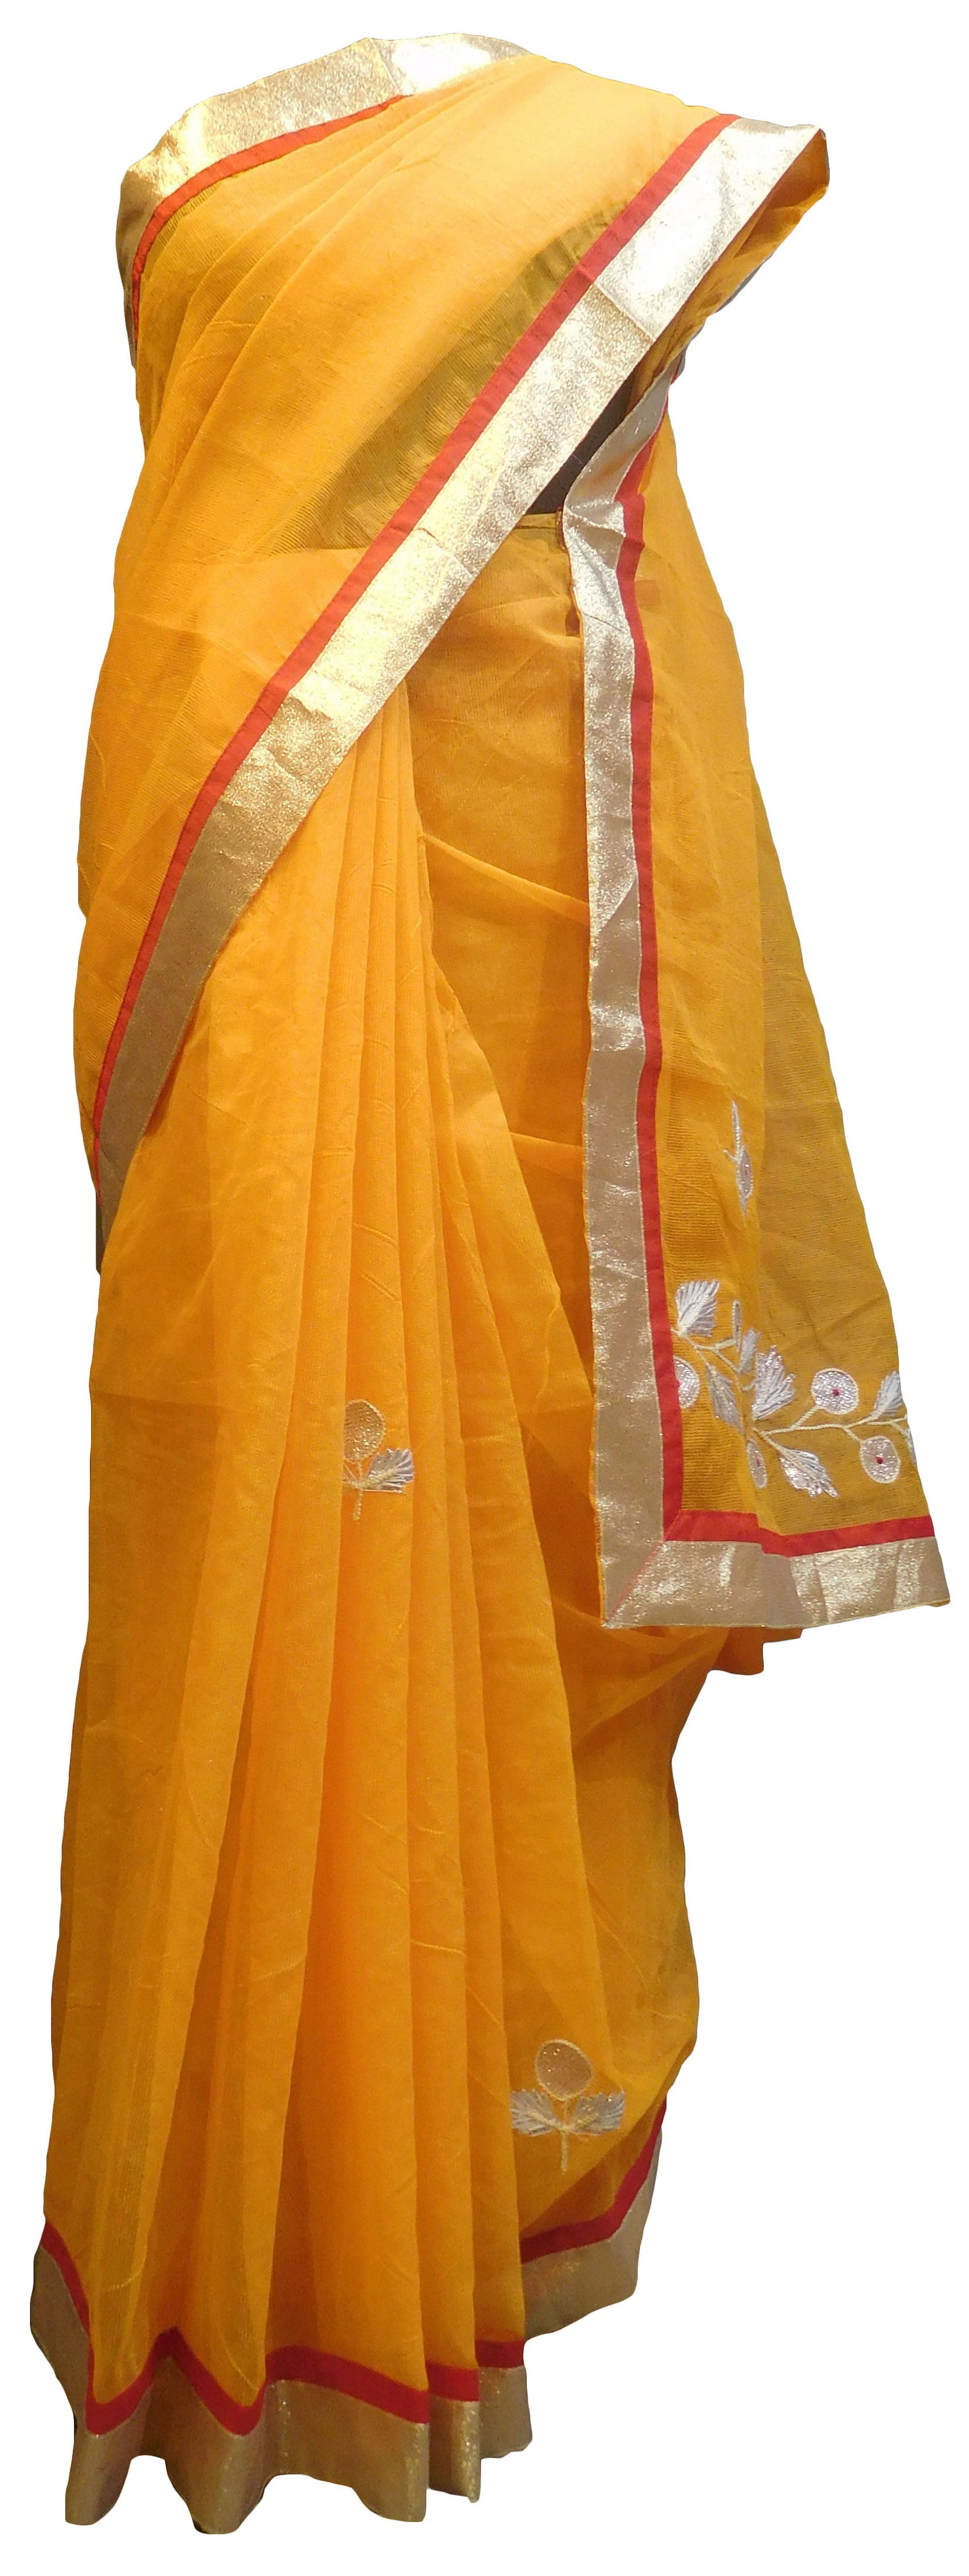 SMSAREE Yellow Designer Wedding Partywear Supernet (Cotton) Zari & Gota Hand Embroidery Work Bridal Saree Sari With Blouse Piece E834